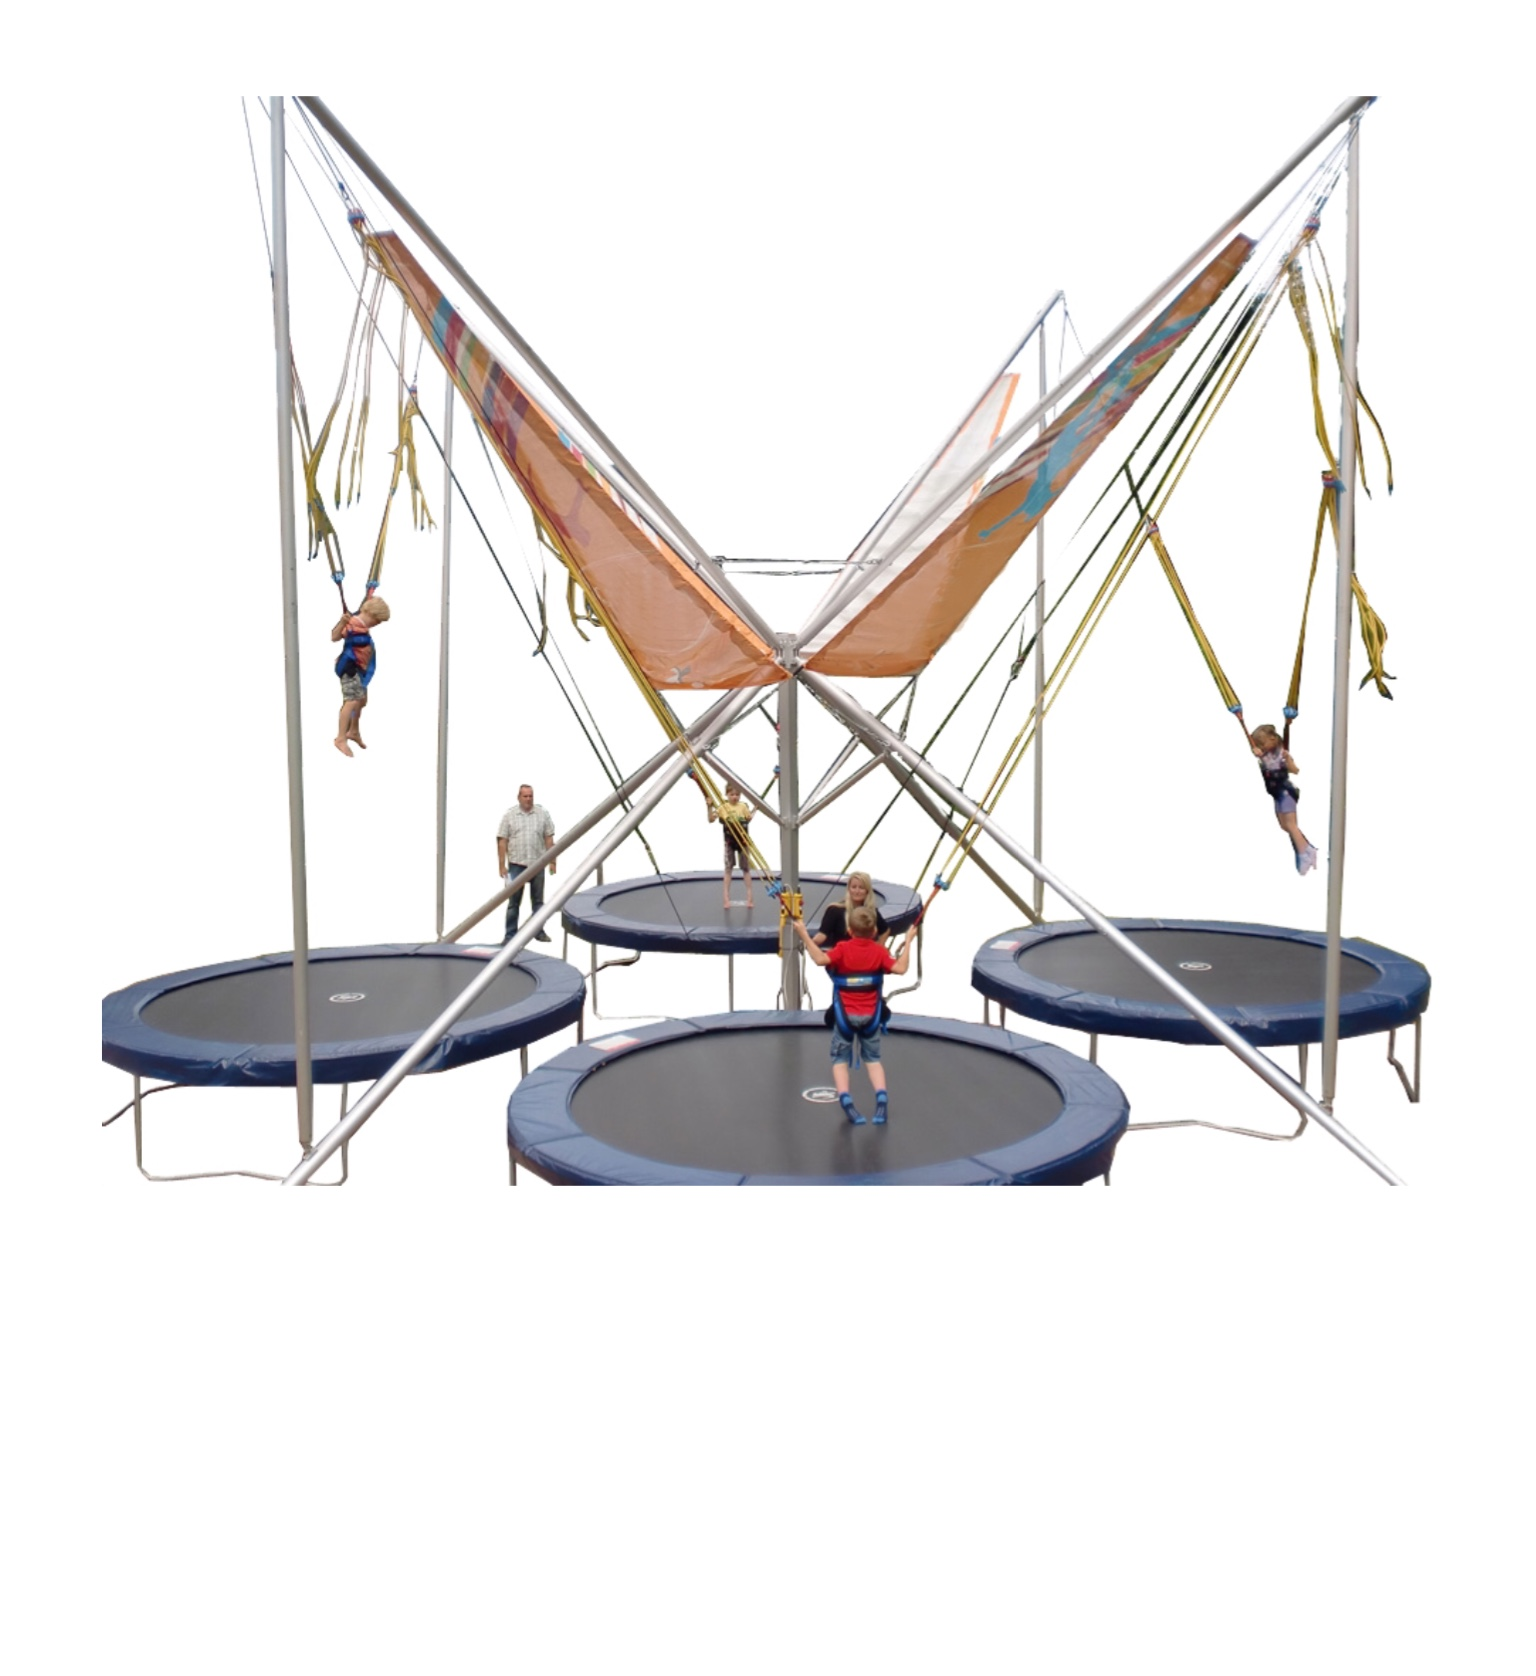 Professional euro bungee 4-seat park version